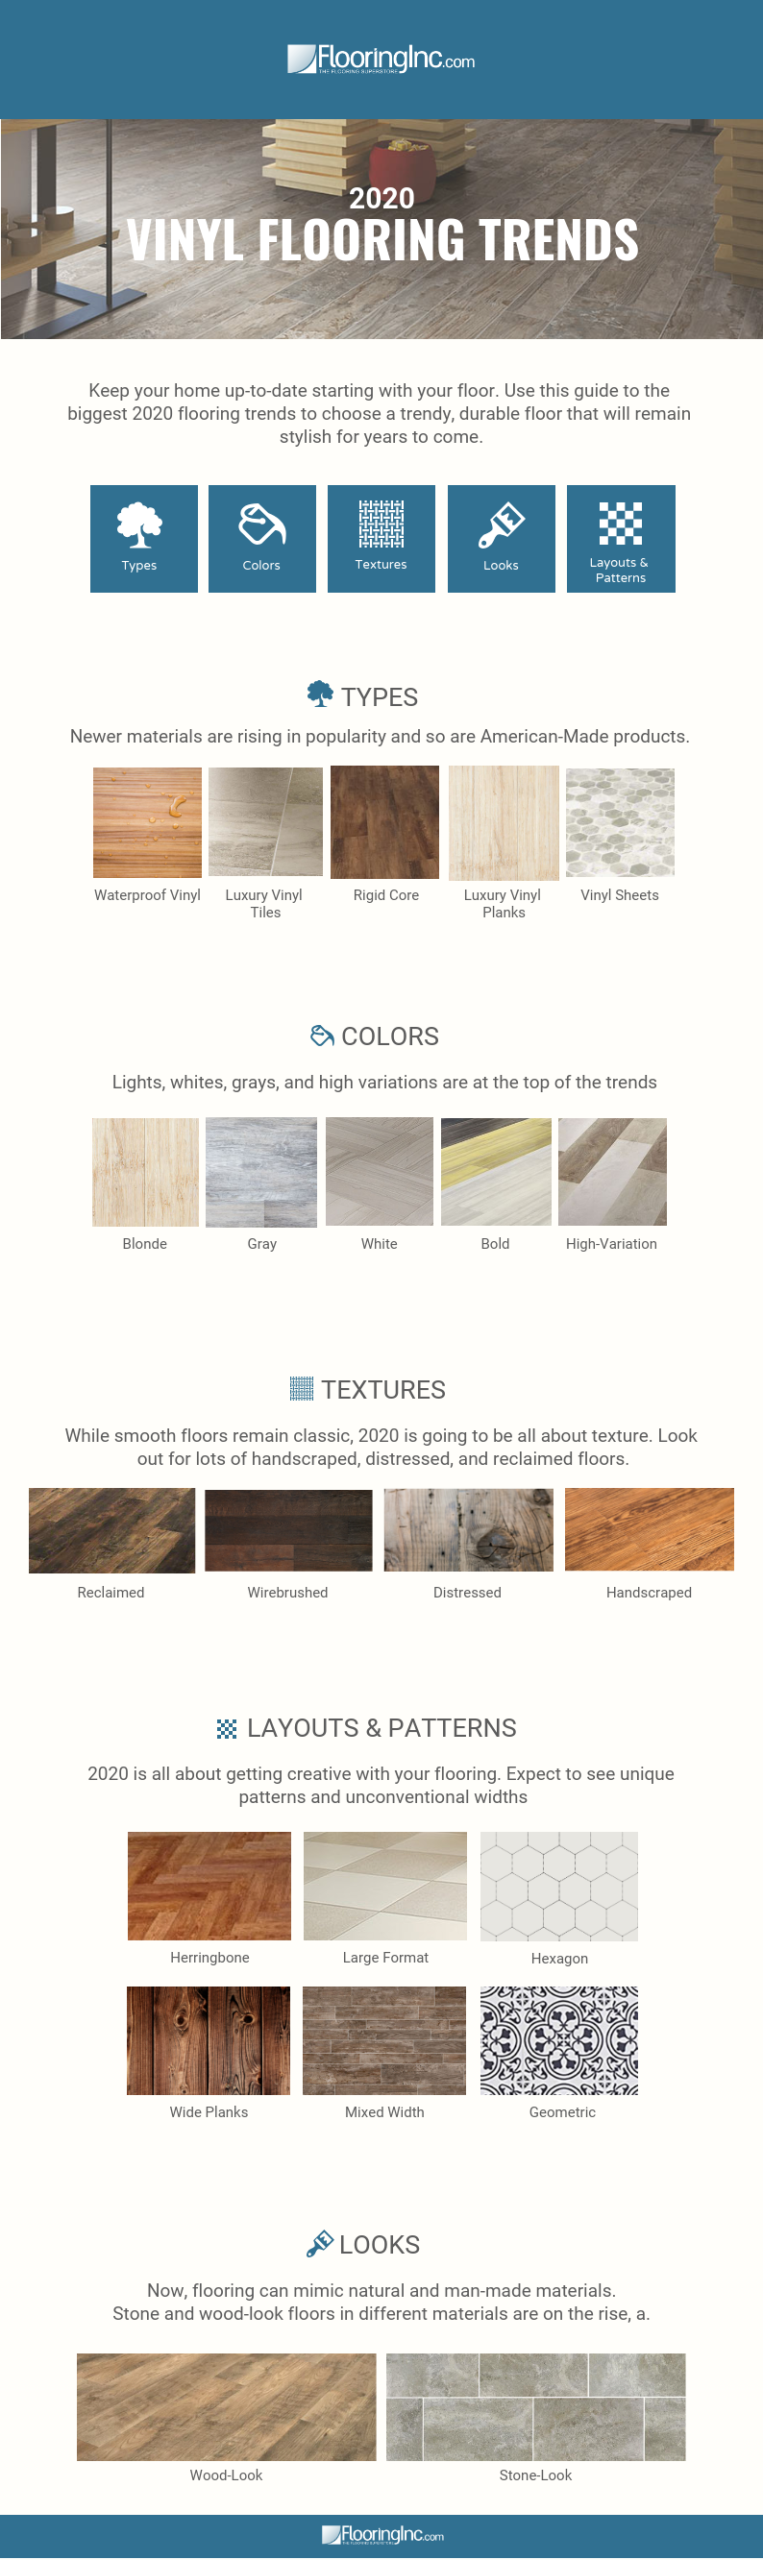 FlooringInc 2020 vinyl flooring trends: chart showing trends in vinyl flooring